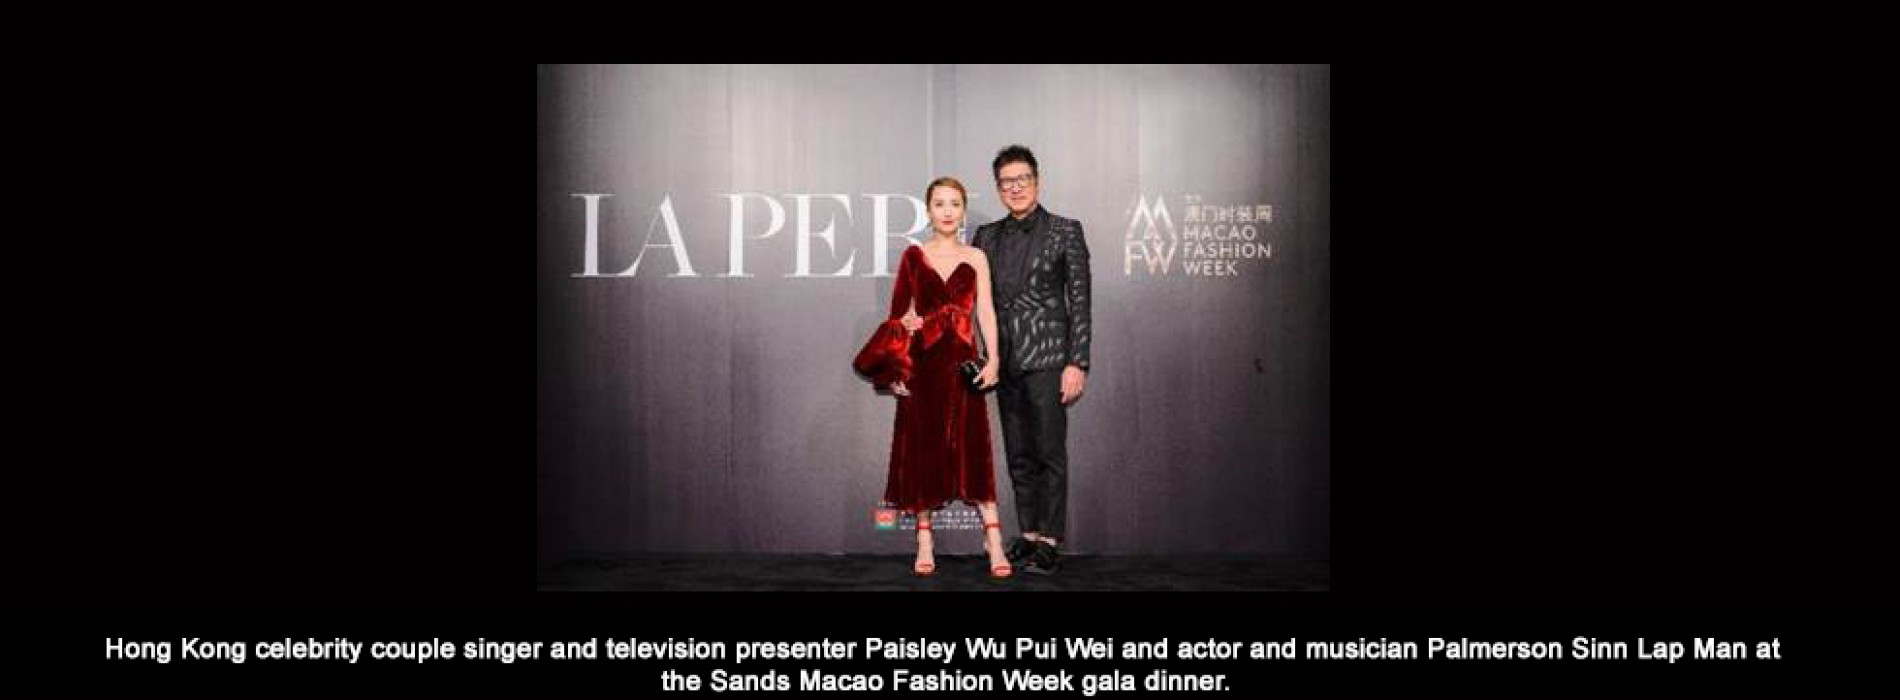 La Perla launches new SS18 collection at Exclusive Gala Dinner for inaugural Sands Macao Fashion Week